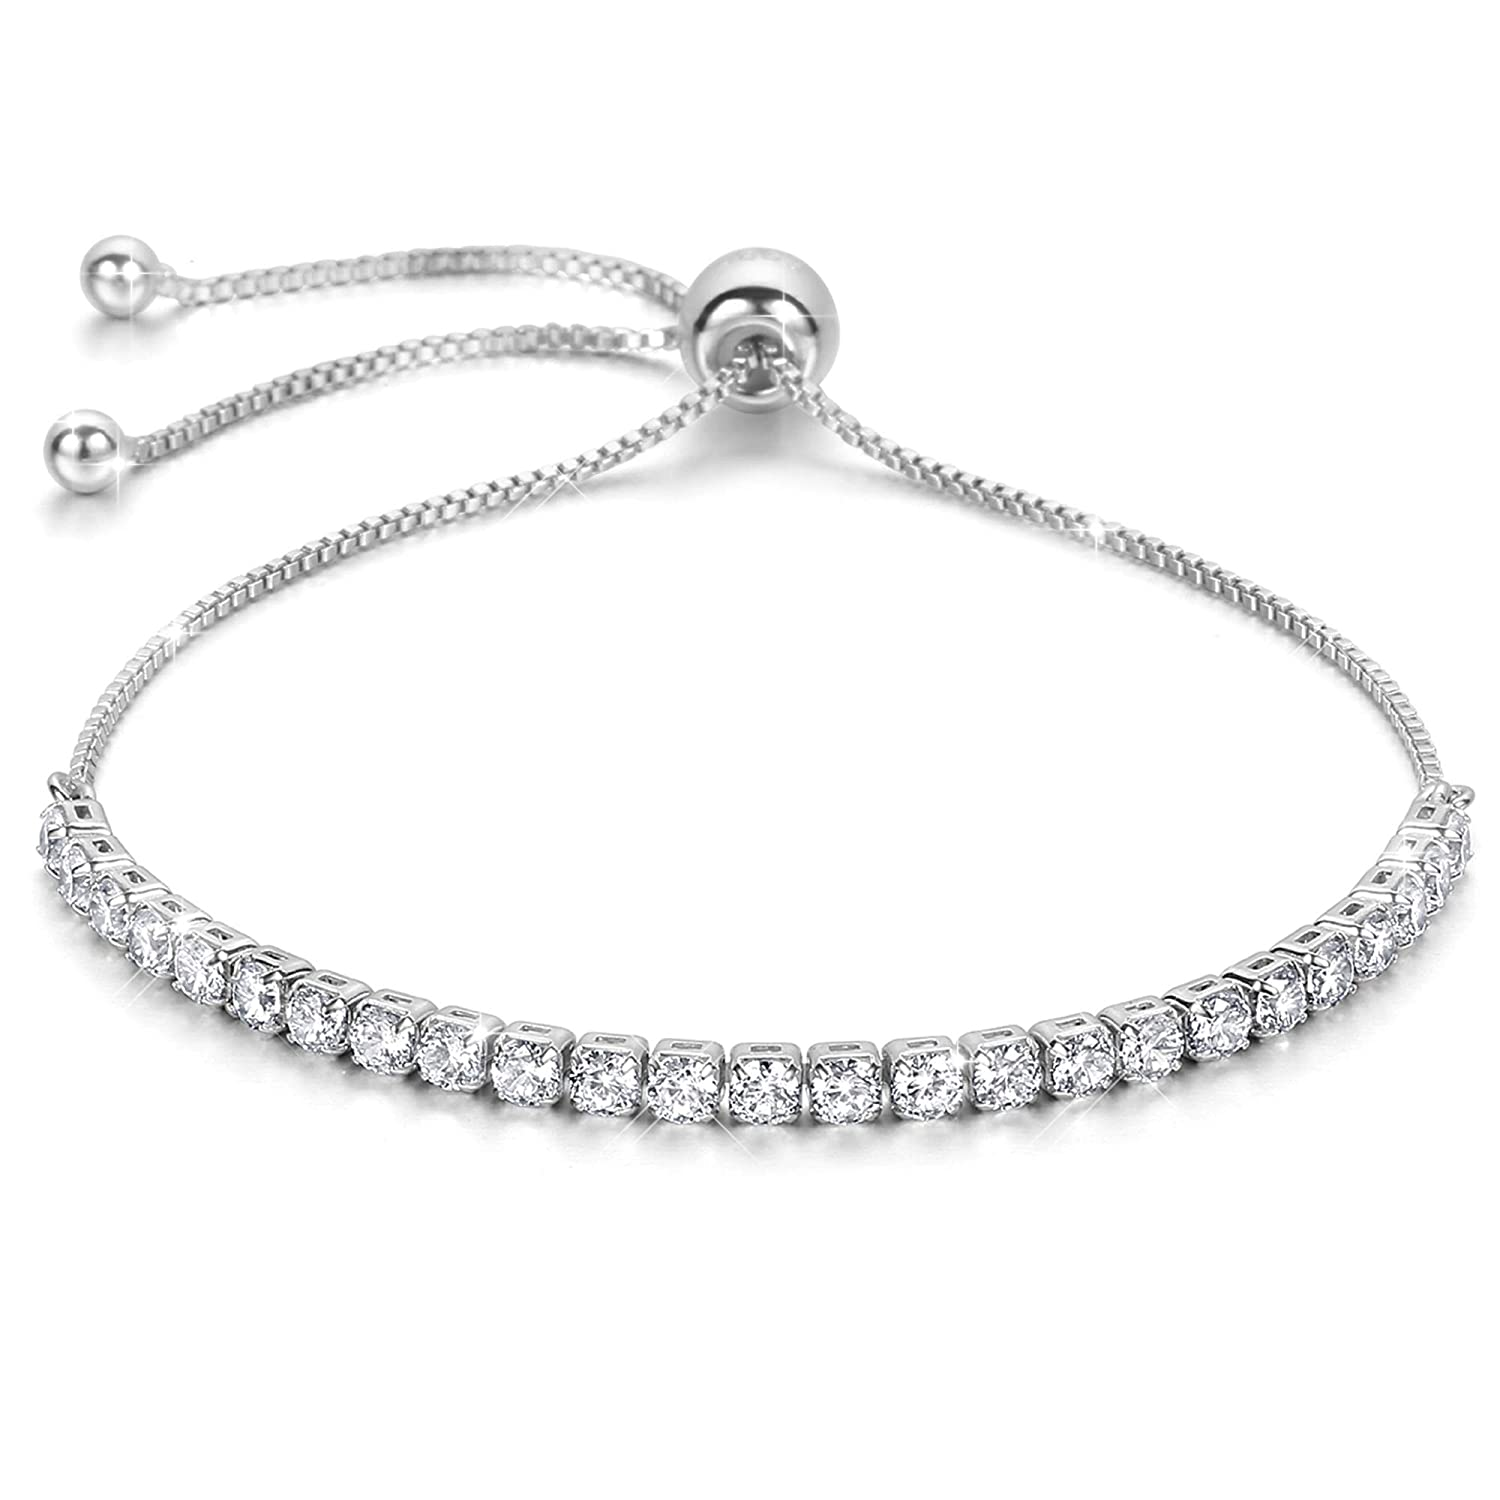 e36507d07 J.Fée Sterling Silver Plated Adjustable Bracelet Shining Jewellery with  Gift Box& Meaning Card Simulated Diamond Crystal(D Color, VVS Clarity)